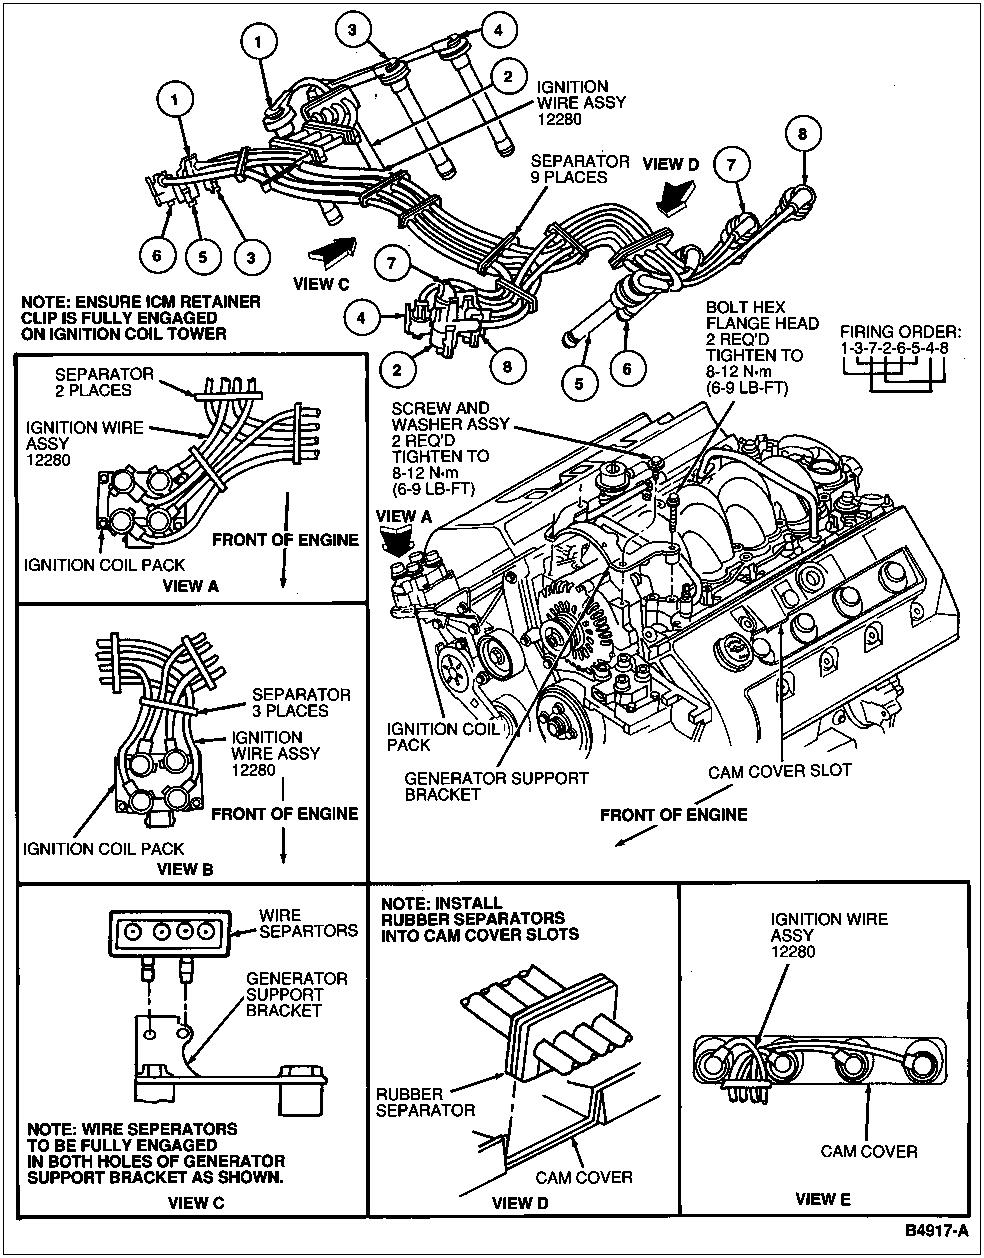 medium resolution of 2011 lincoln mkx wiring diagram wiring diagram schematics 2000 lincoln navigator engine diagram 2010 lincoln mkx engine diagram